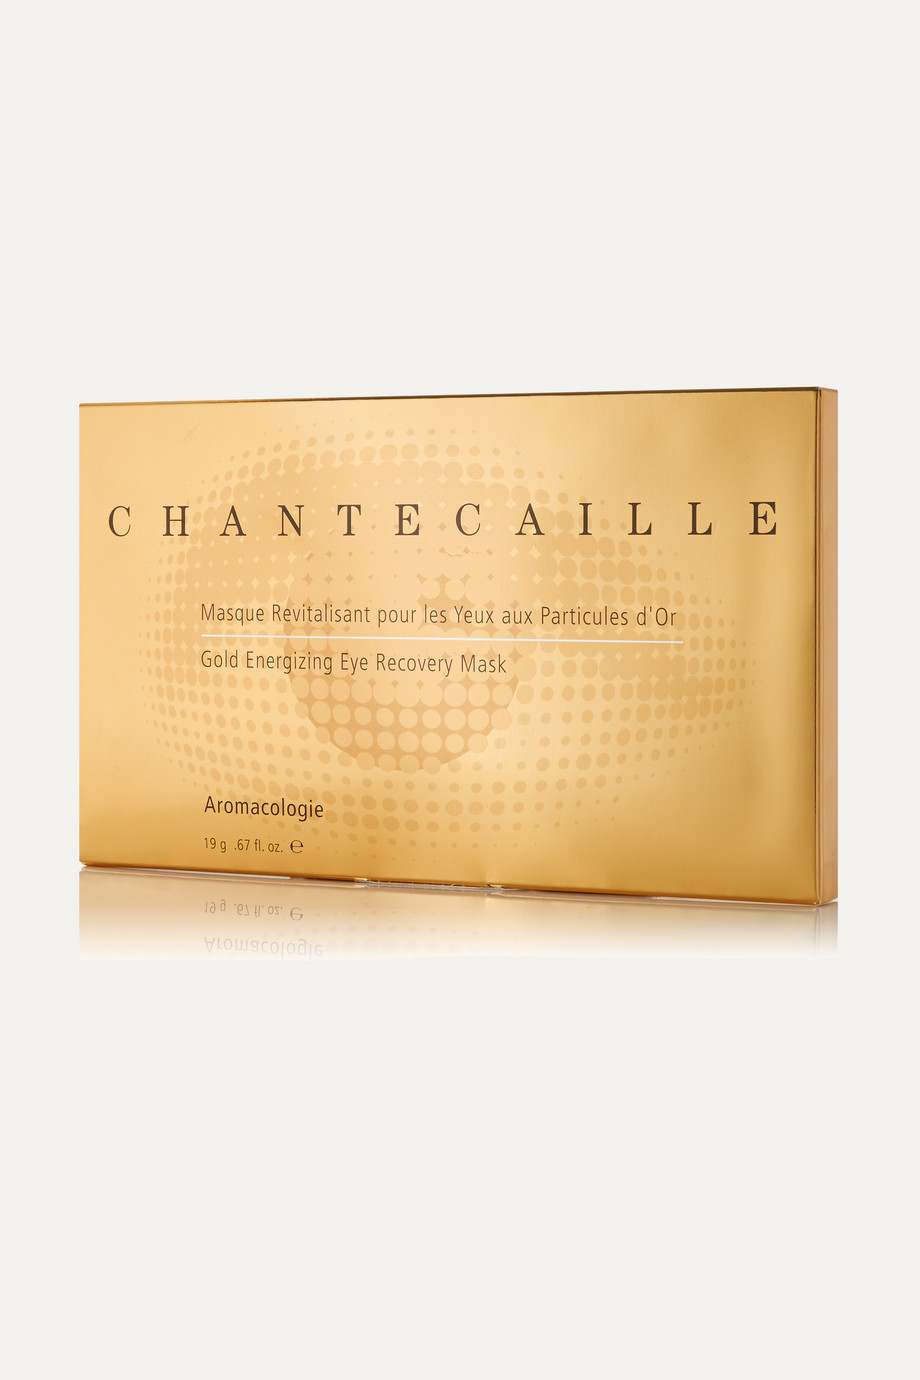 Chantecaille Gold Energizing Eye Recovery Mask – 8 Augenmasken